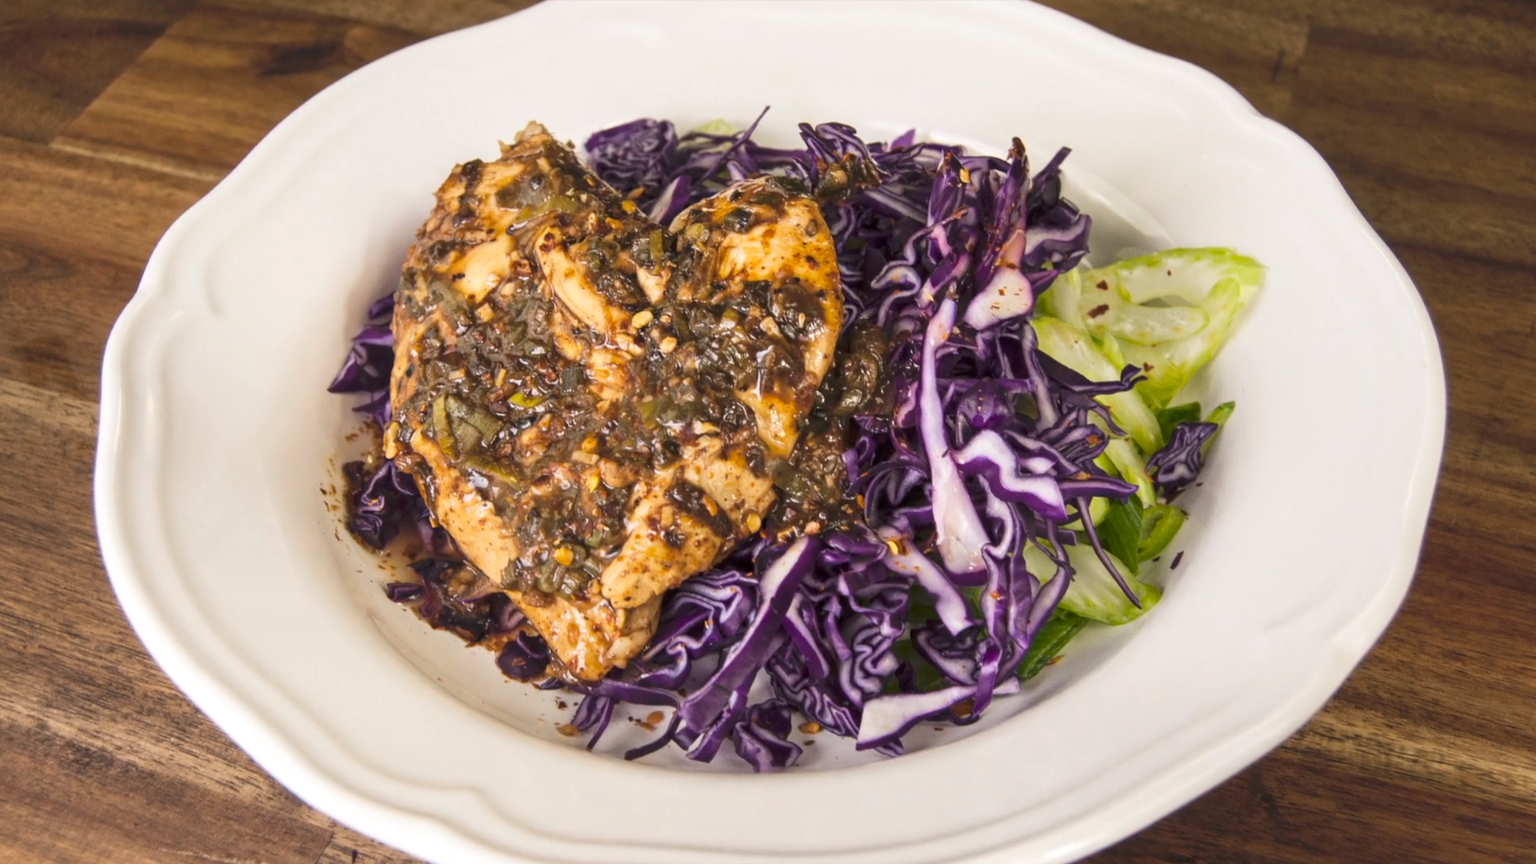 Try the Asian Chicken Snow Pea Slaw. Ideal Protein Phase 1 Recipe is delicious and is also great for Phase 2 and Phase 3. Ideal Protein Protocol helps you Lose weight fast and safely. #IdealProtein #idealproteinrecipesphase1dinner